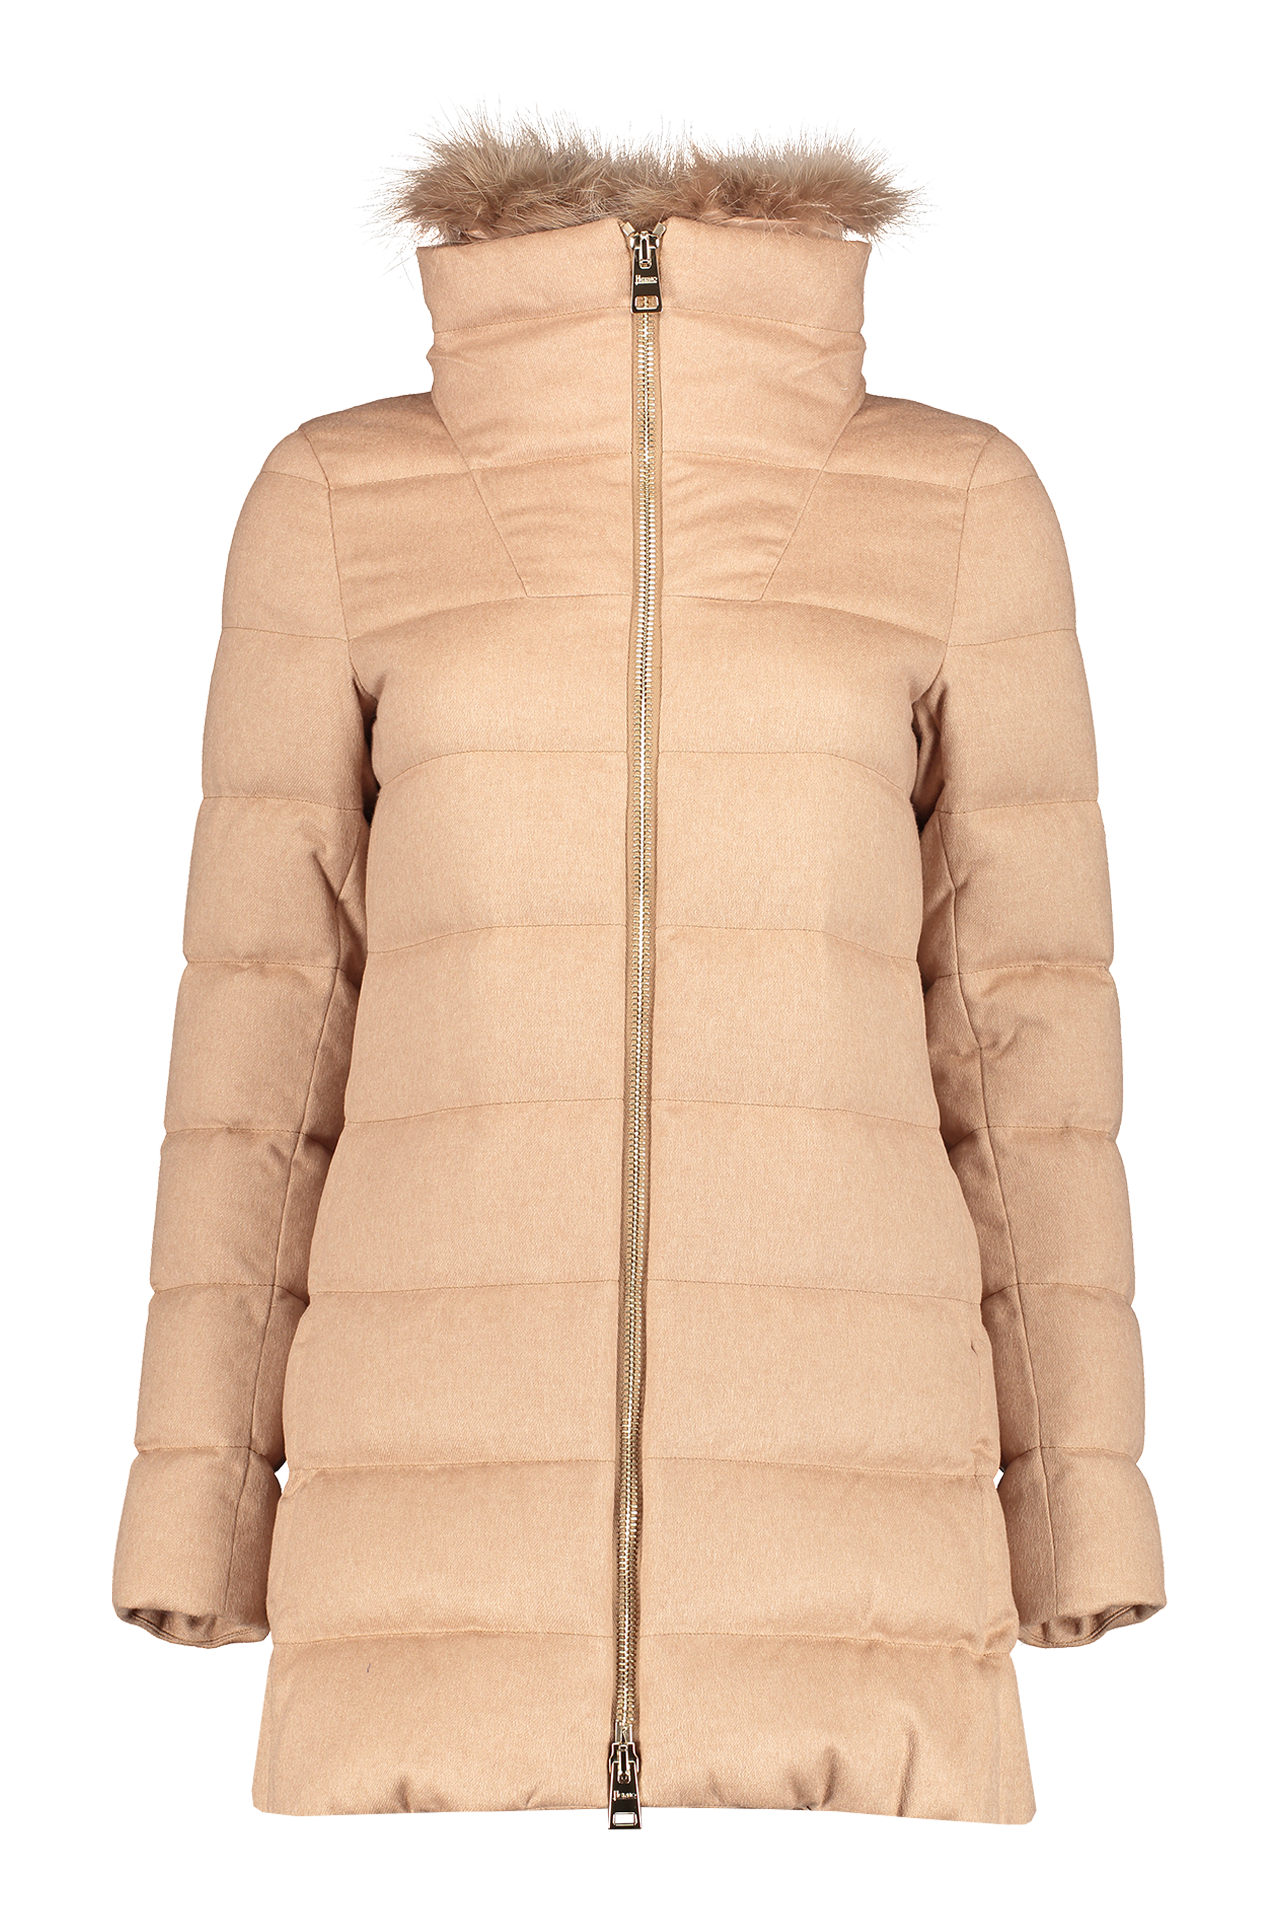 Front image of Herno Women's Silk Cashmere Hilo Jacket Fox Collar